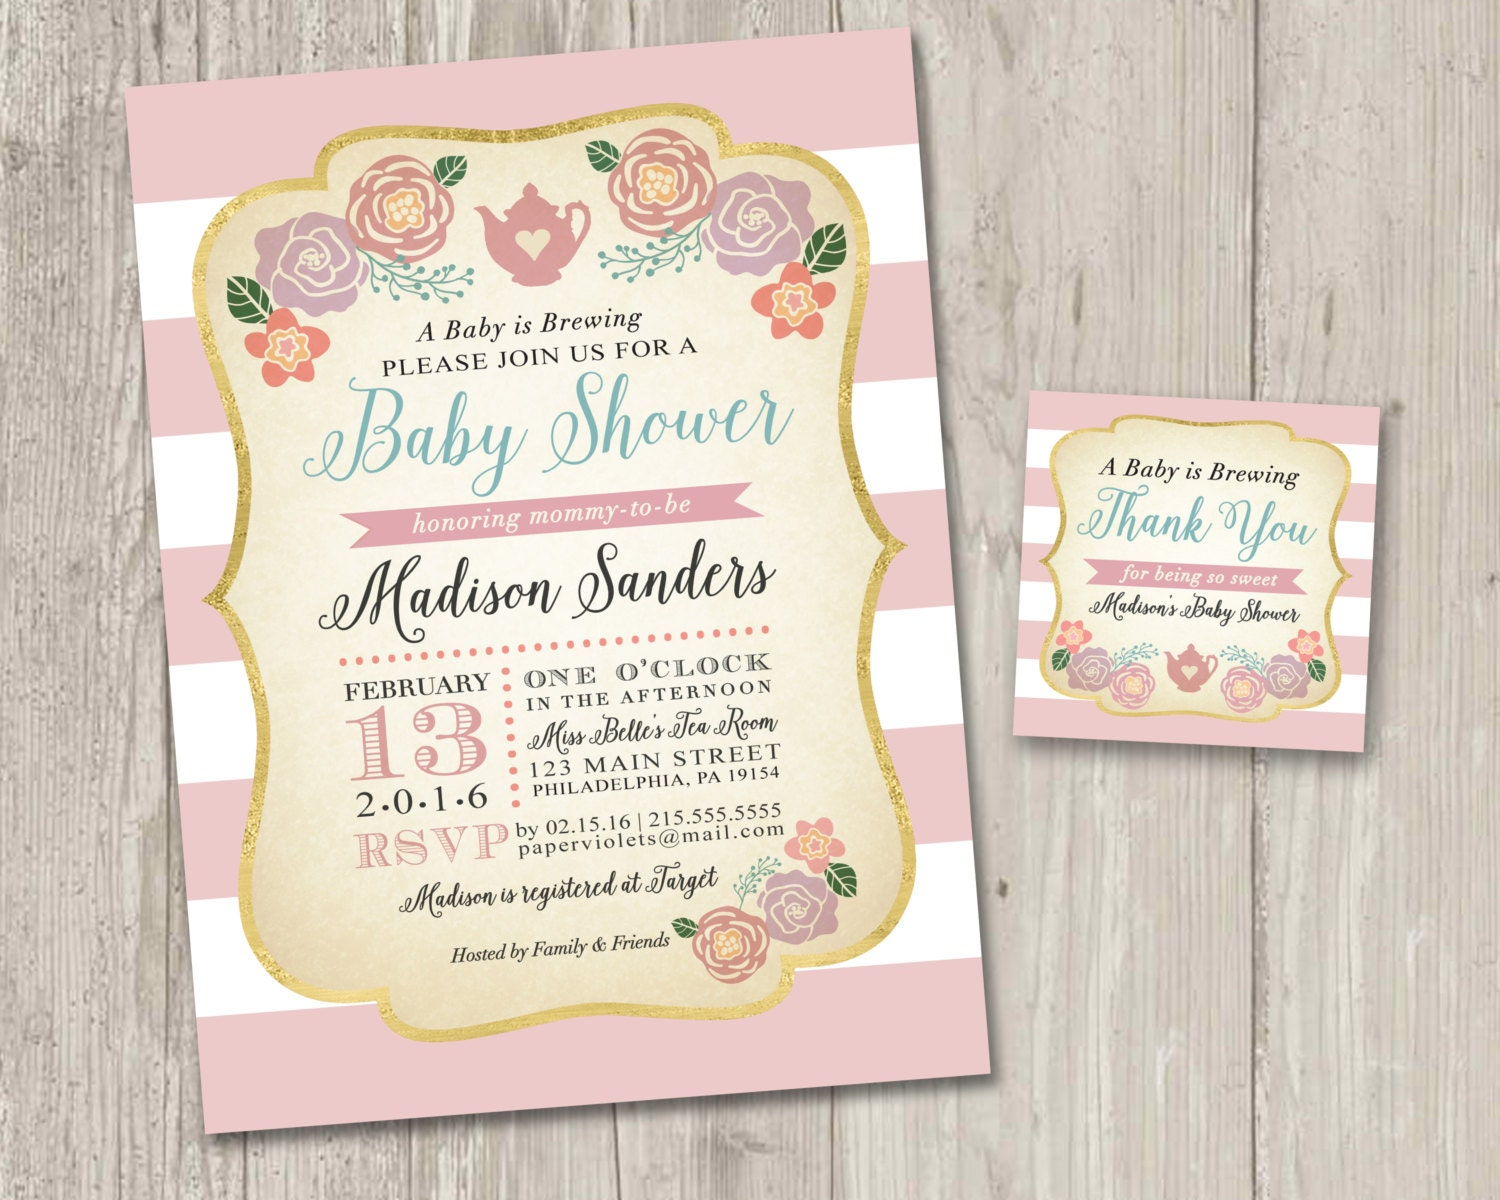 Baby Shower Invitation Vintage Tea Party Invitation Wedding | Etsy